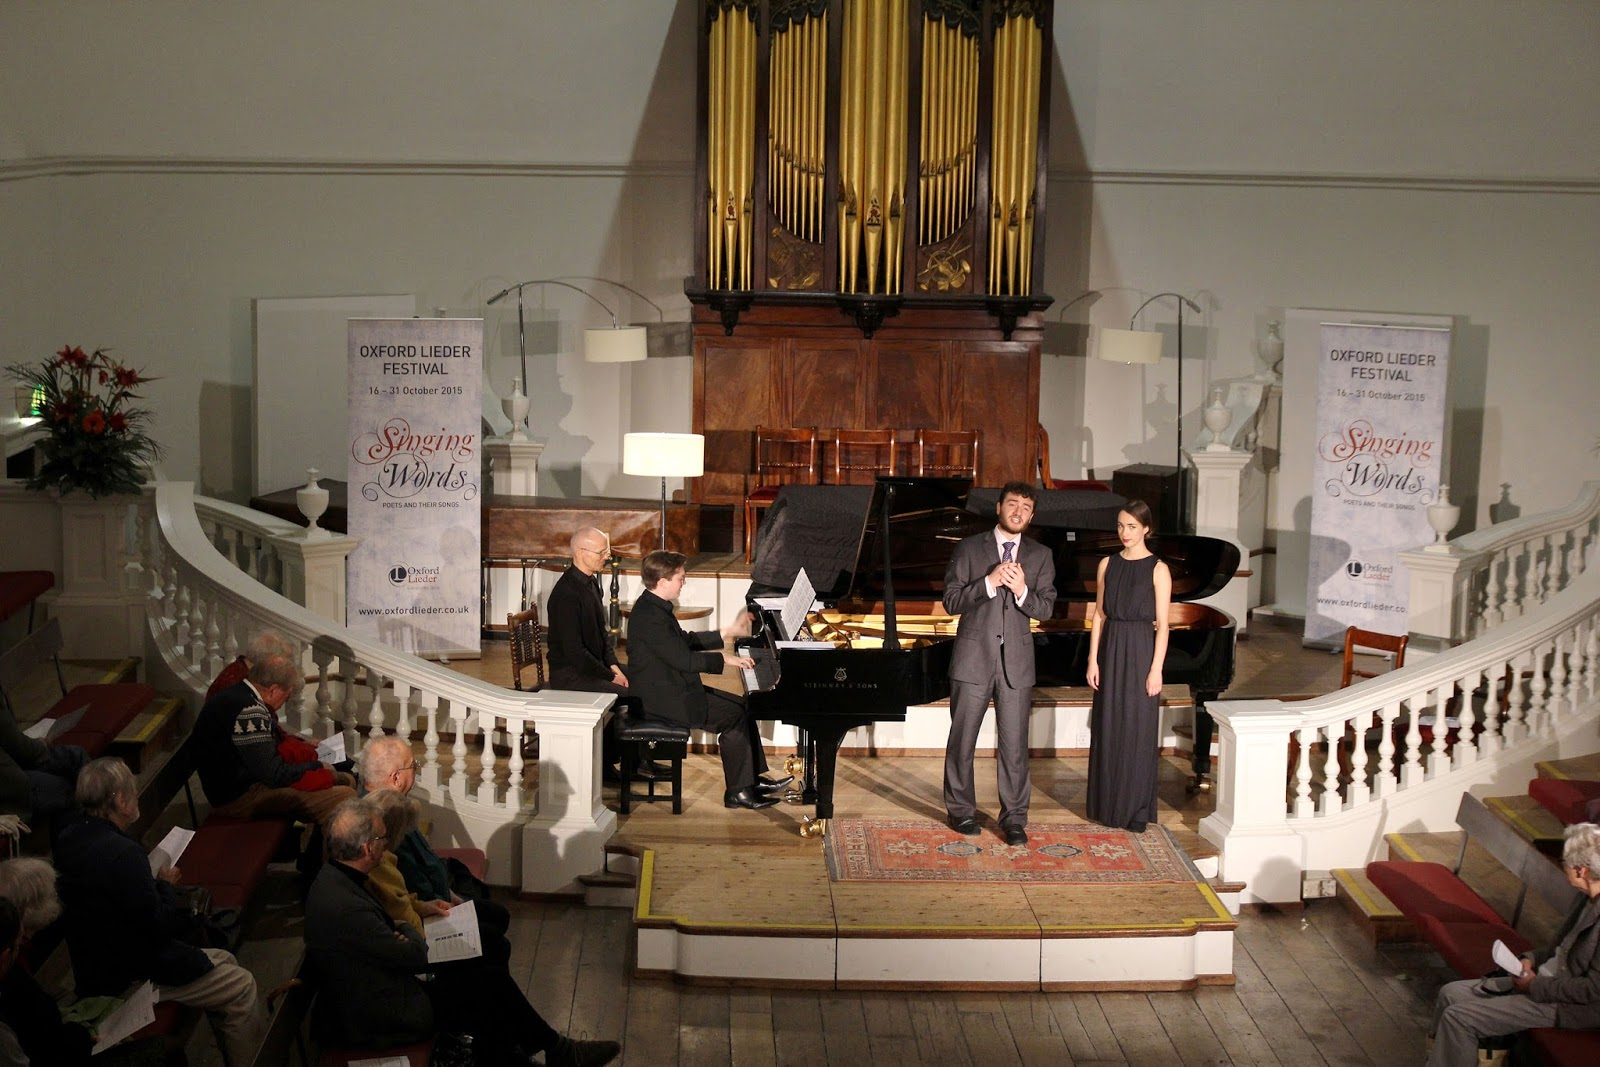 Planet Hugill A Day At The Oxford Lieder Festival Part Two